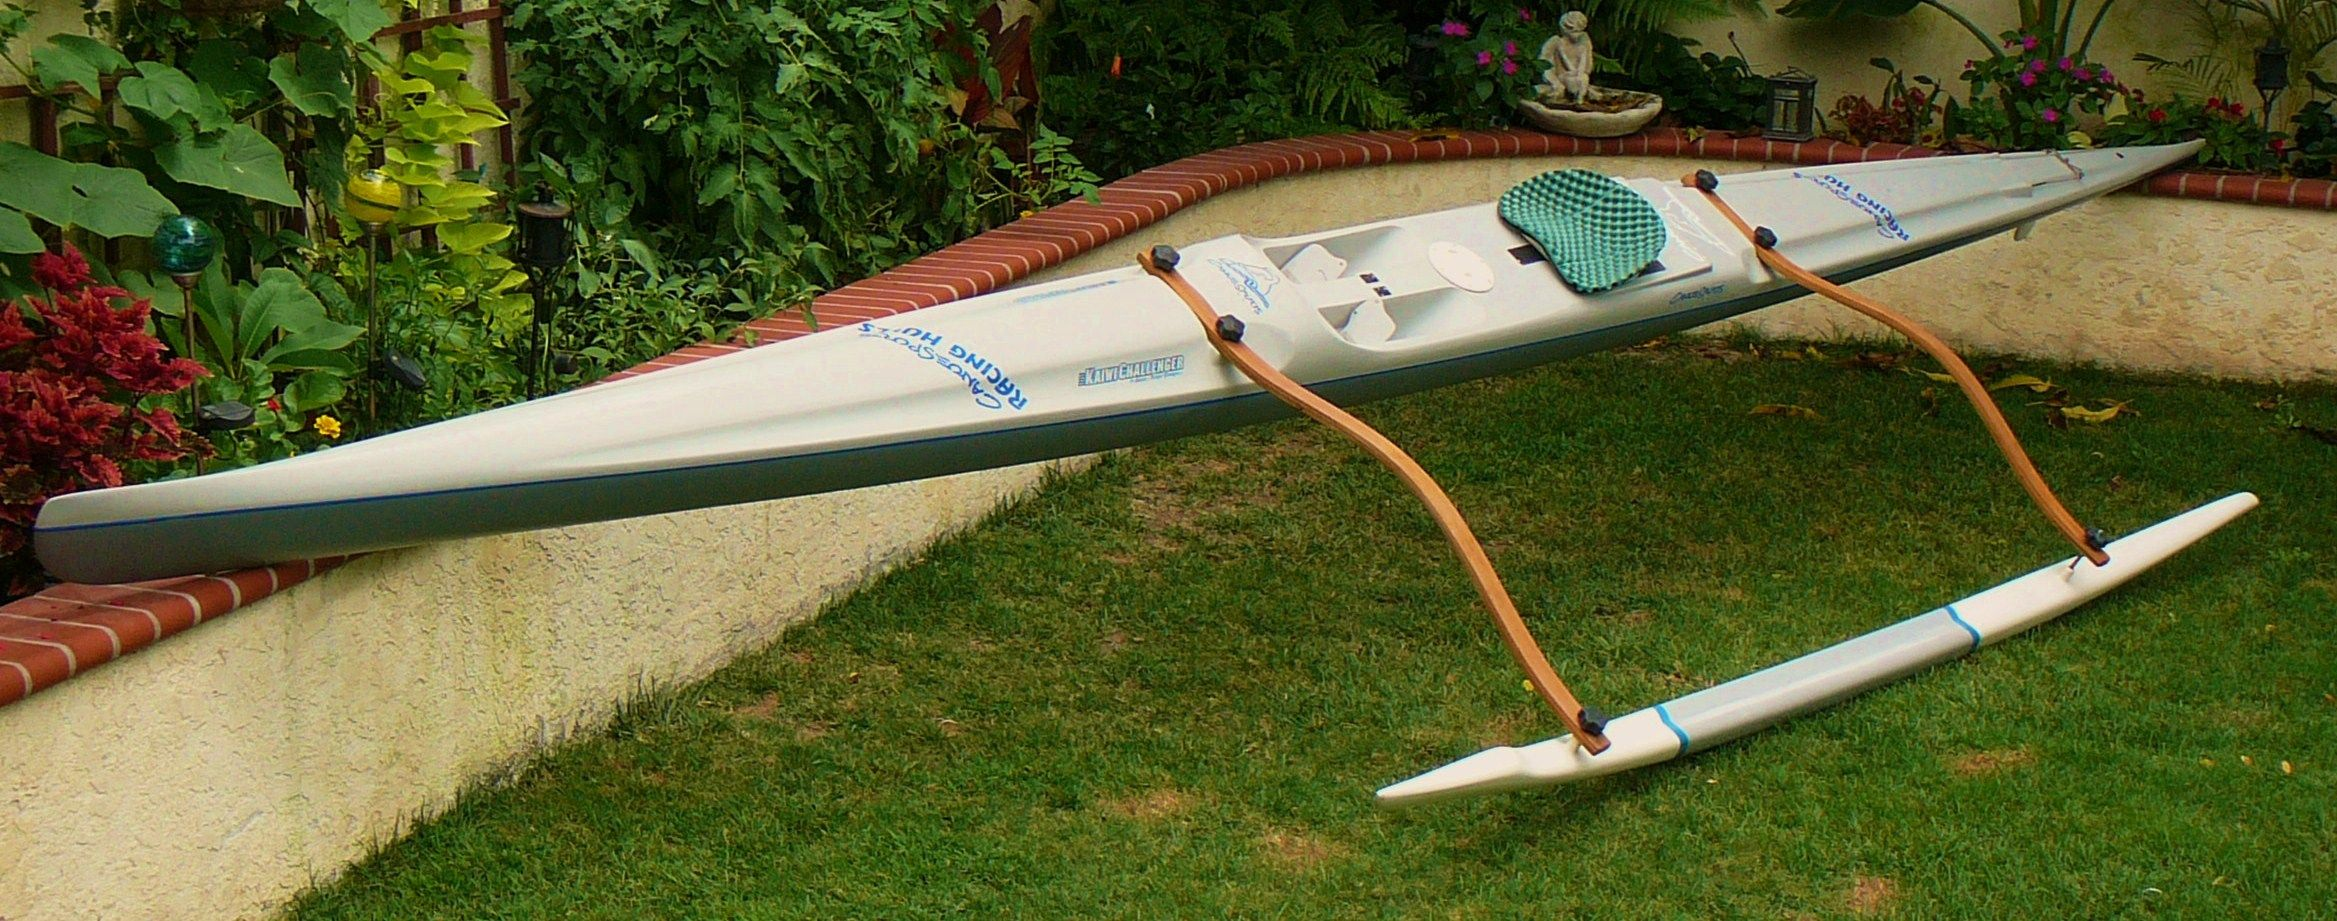 C Lion Outrigger Canoe YakGear Outrigg...